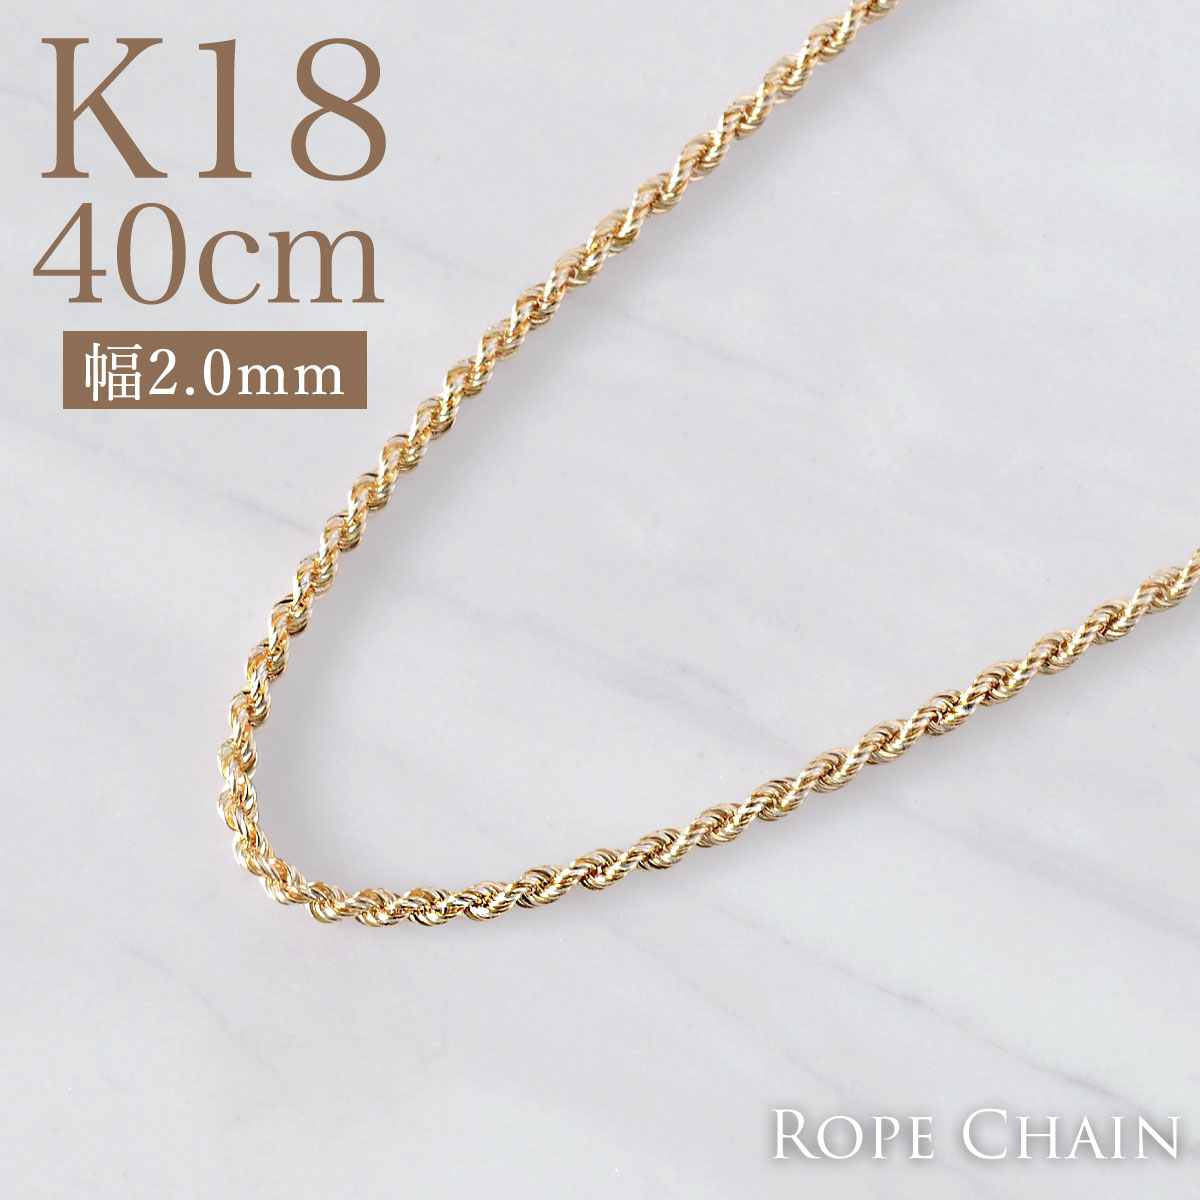 K18 イエローゴールド ロープ 幅2.0 チェーン 40cm / プレゼント ギフト gold necklace